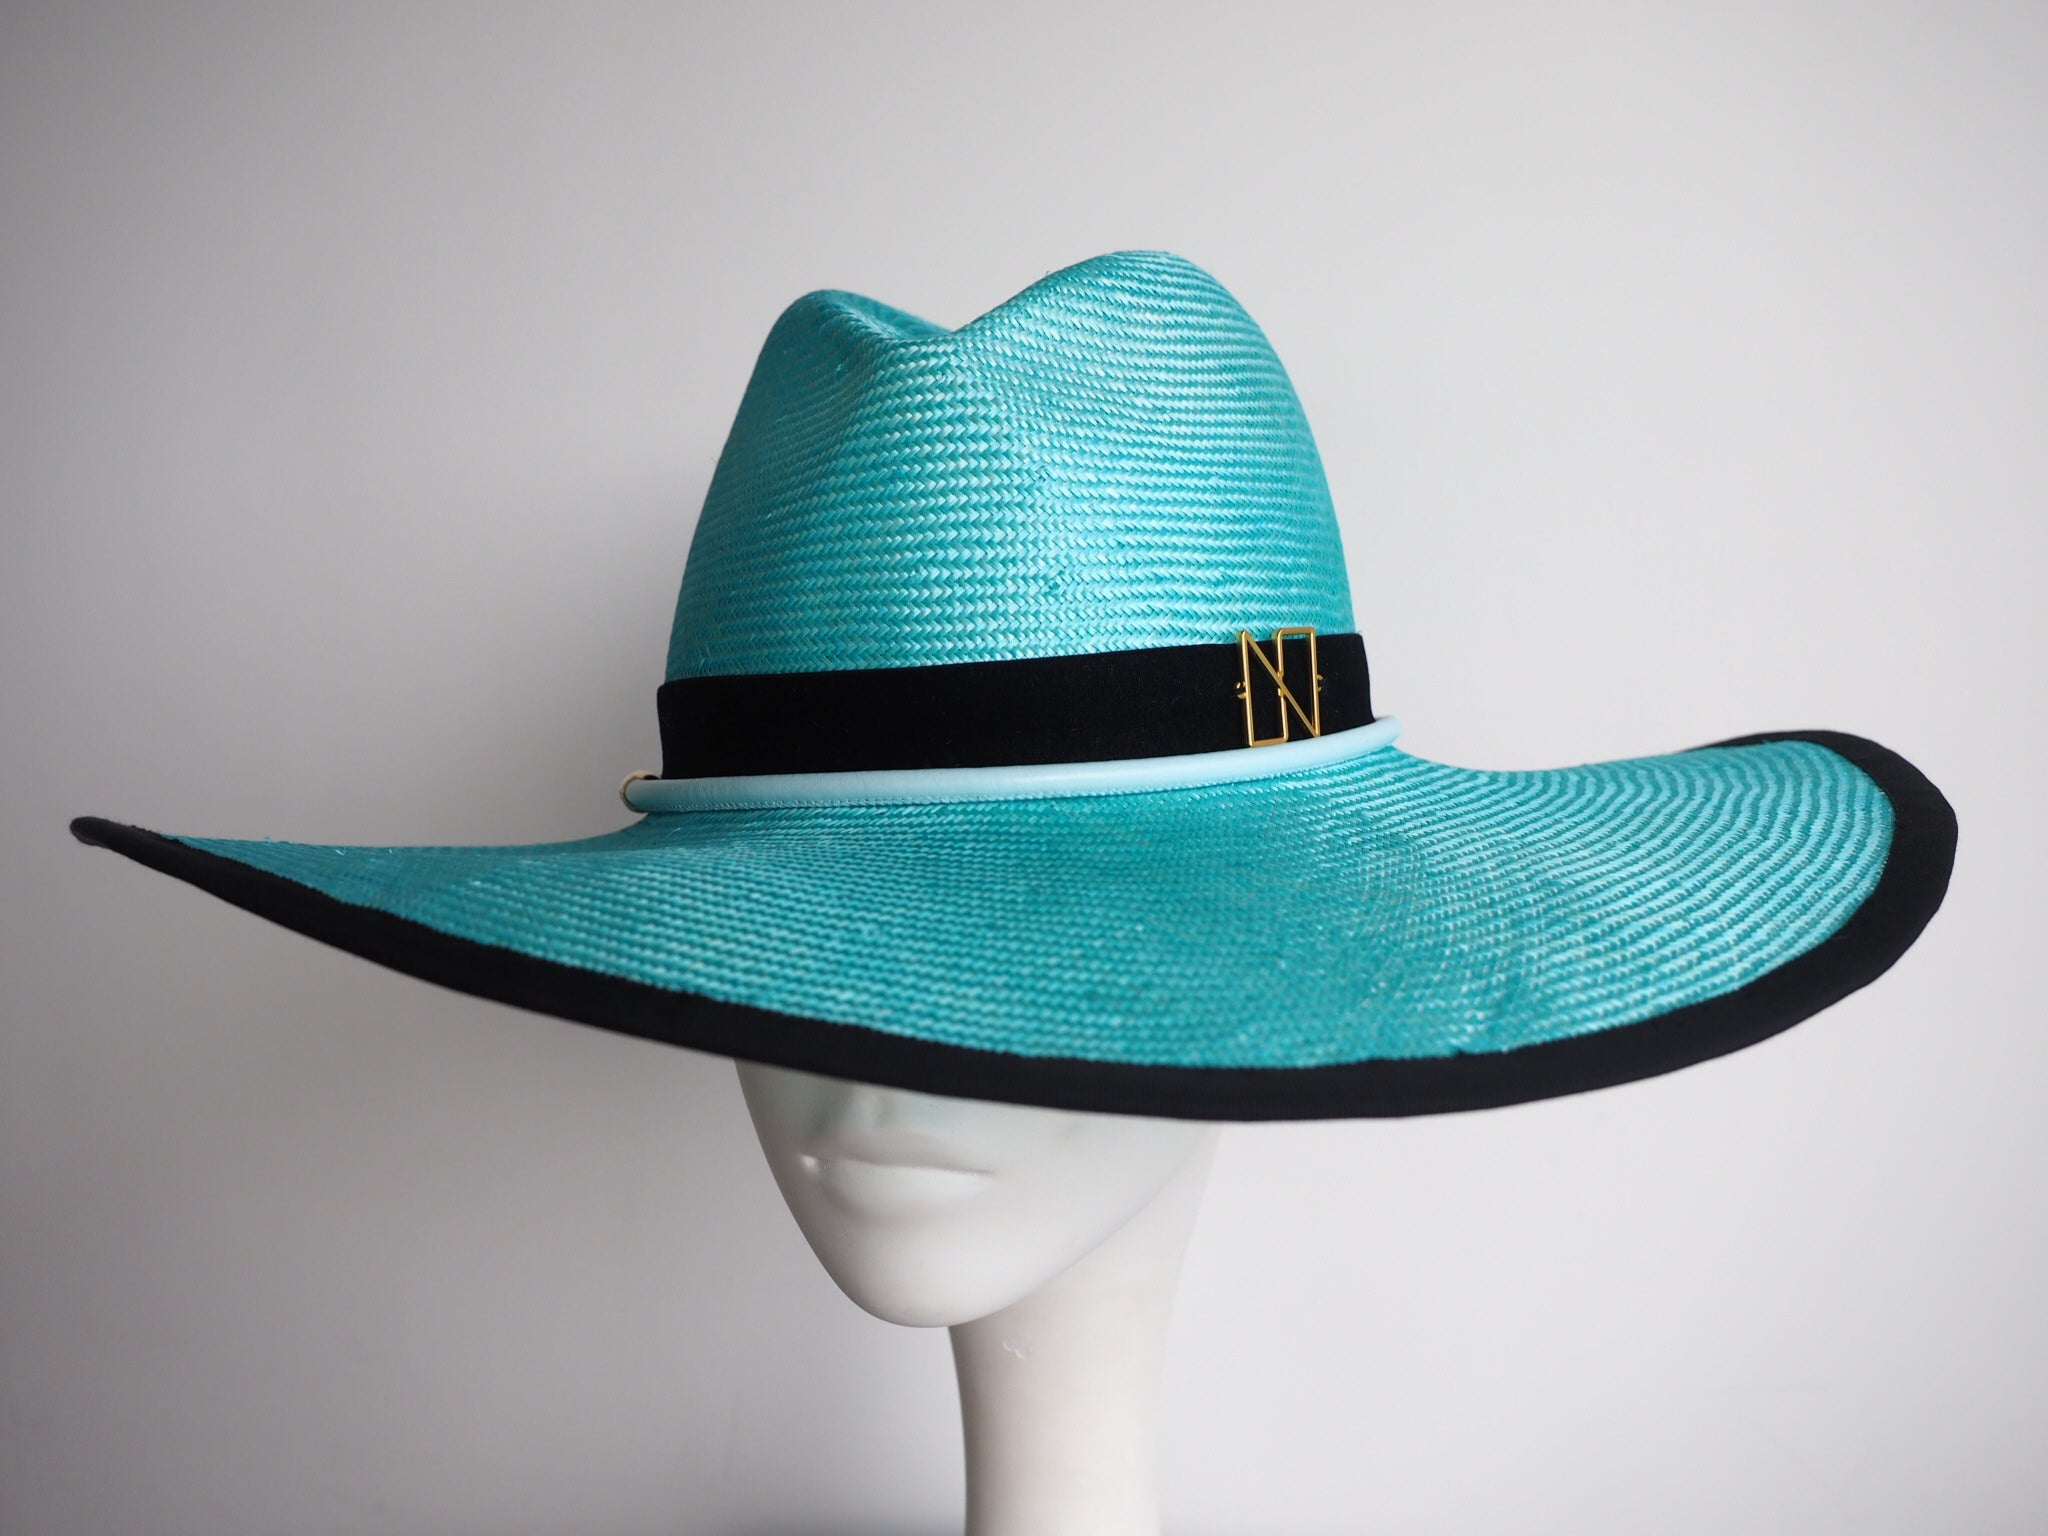 Sage - Large Brim light green fedora hat handcrafted in Hong Kong - Designer Hats - NOELEEN MILLINERY HONG KONG